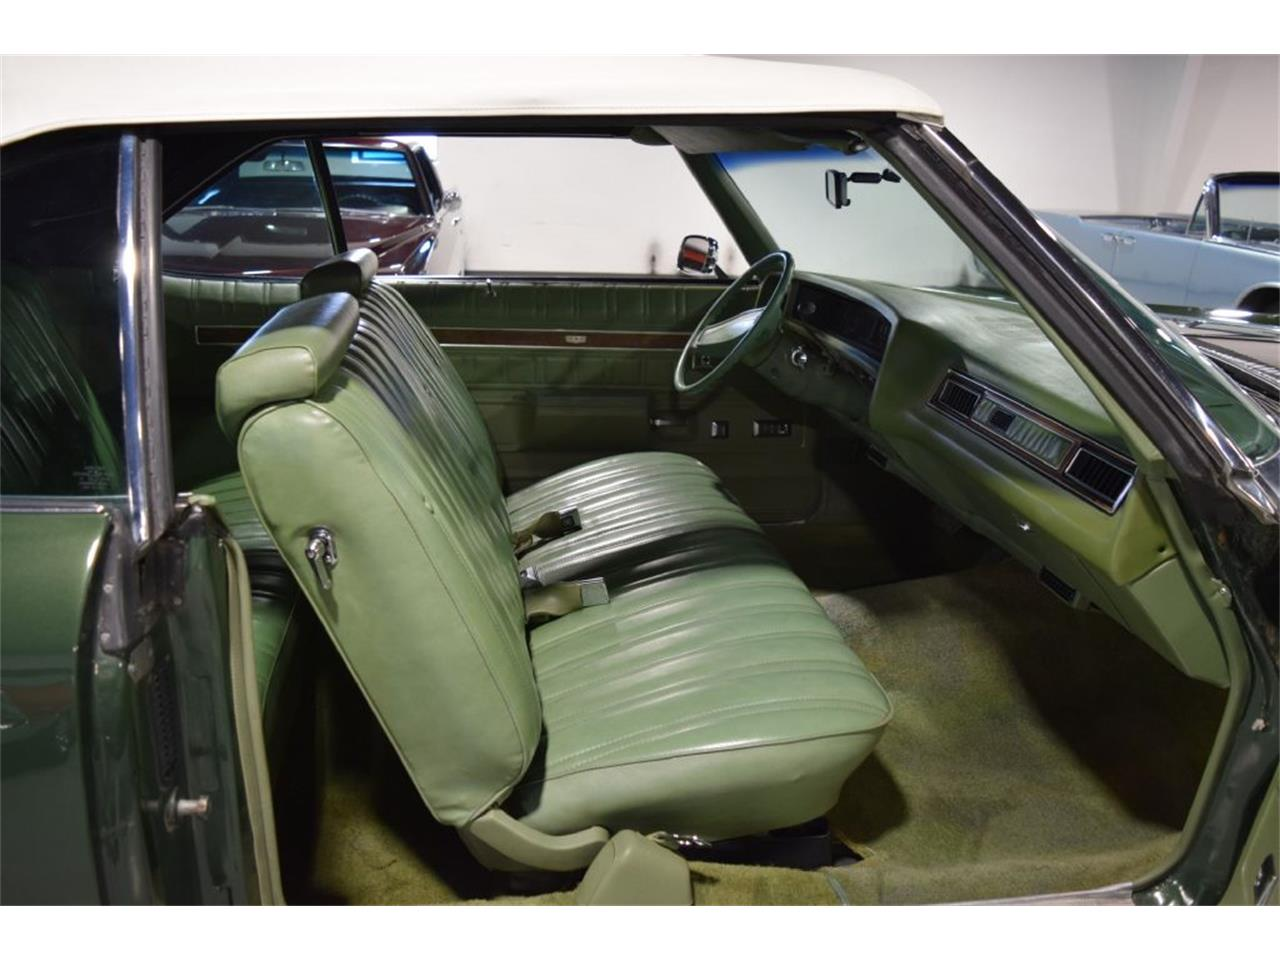 1974 Chevrolet Caprice for sale in Sioux City, IA – photo 23